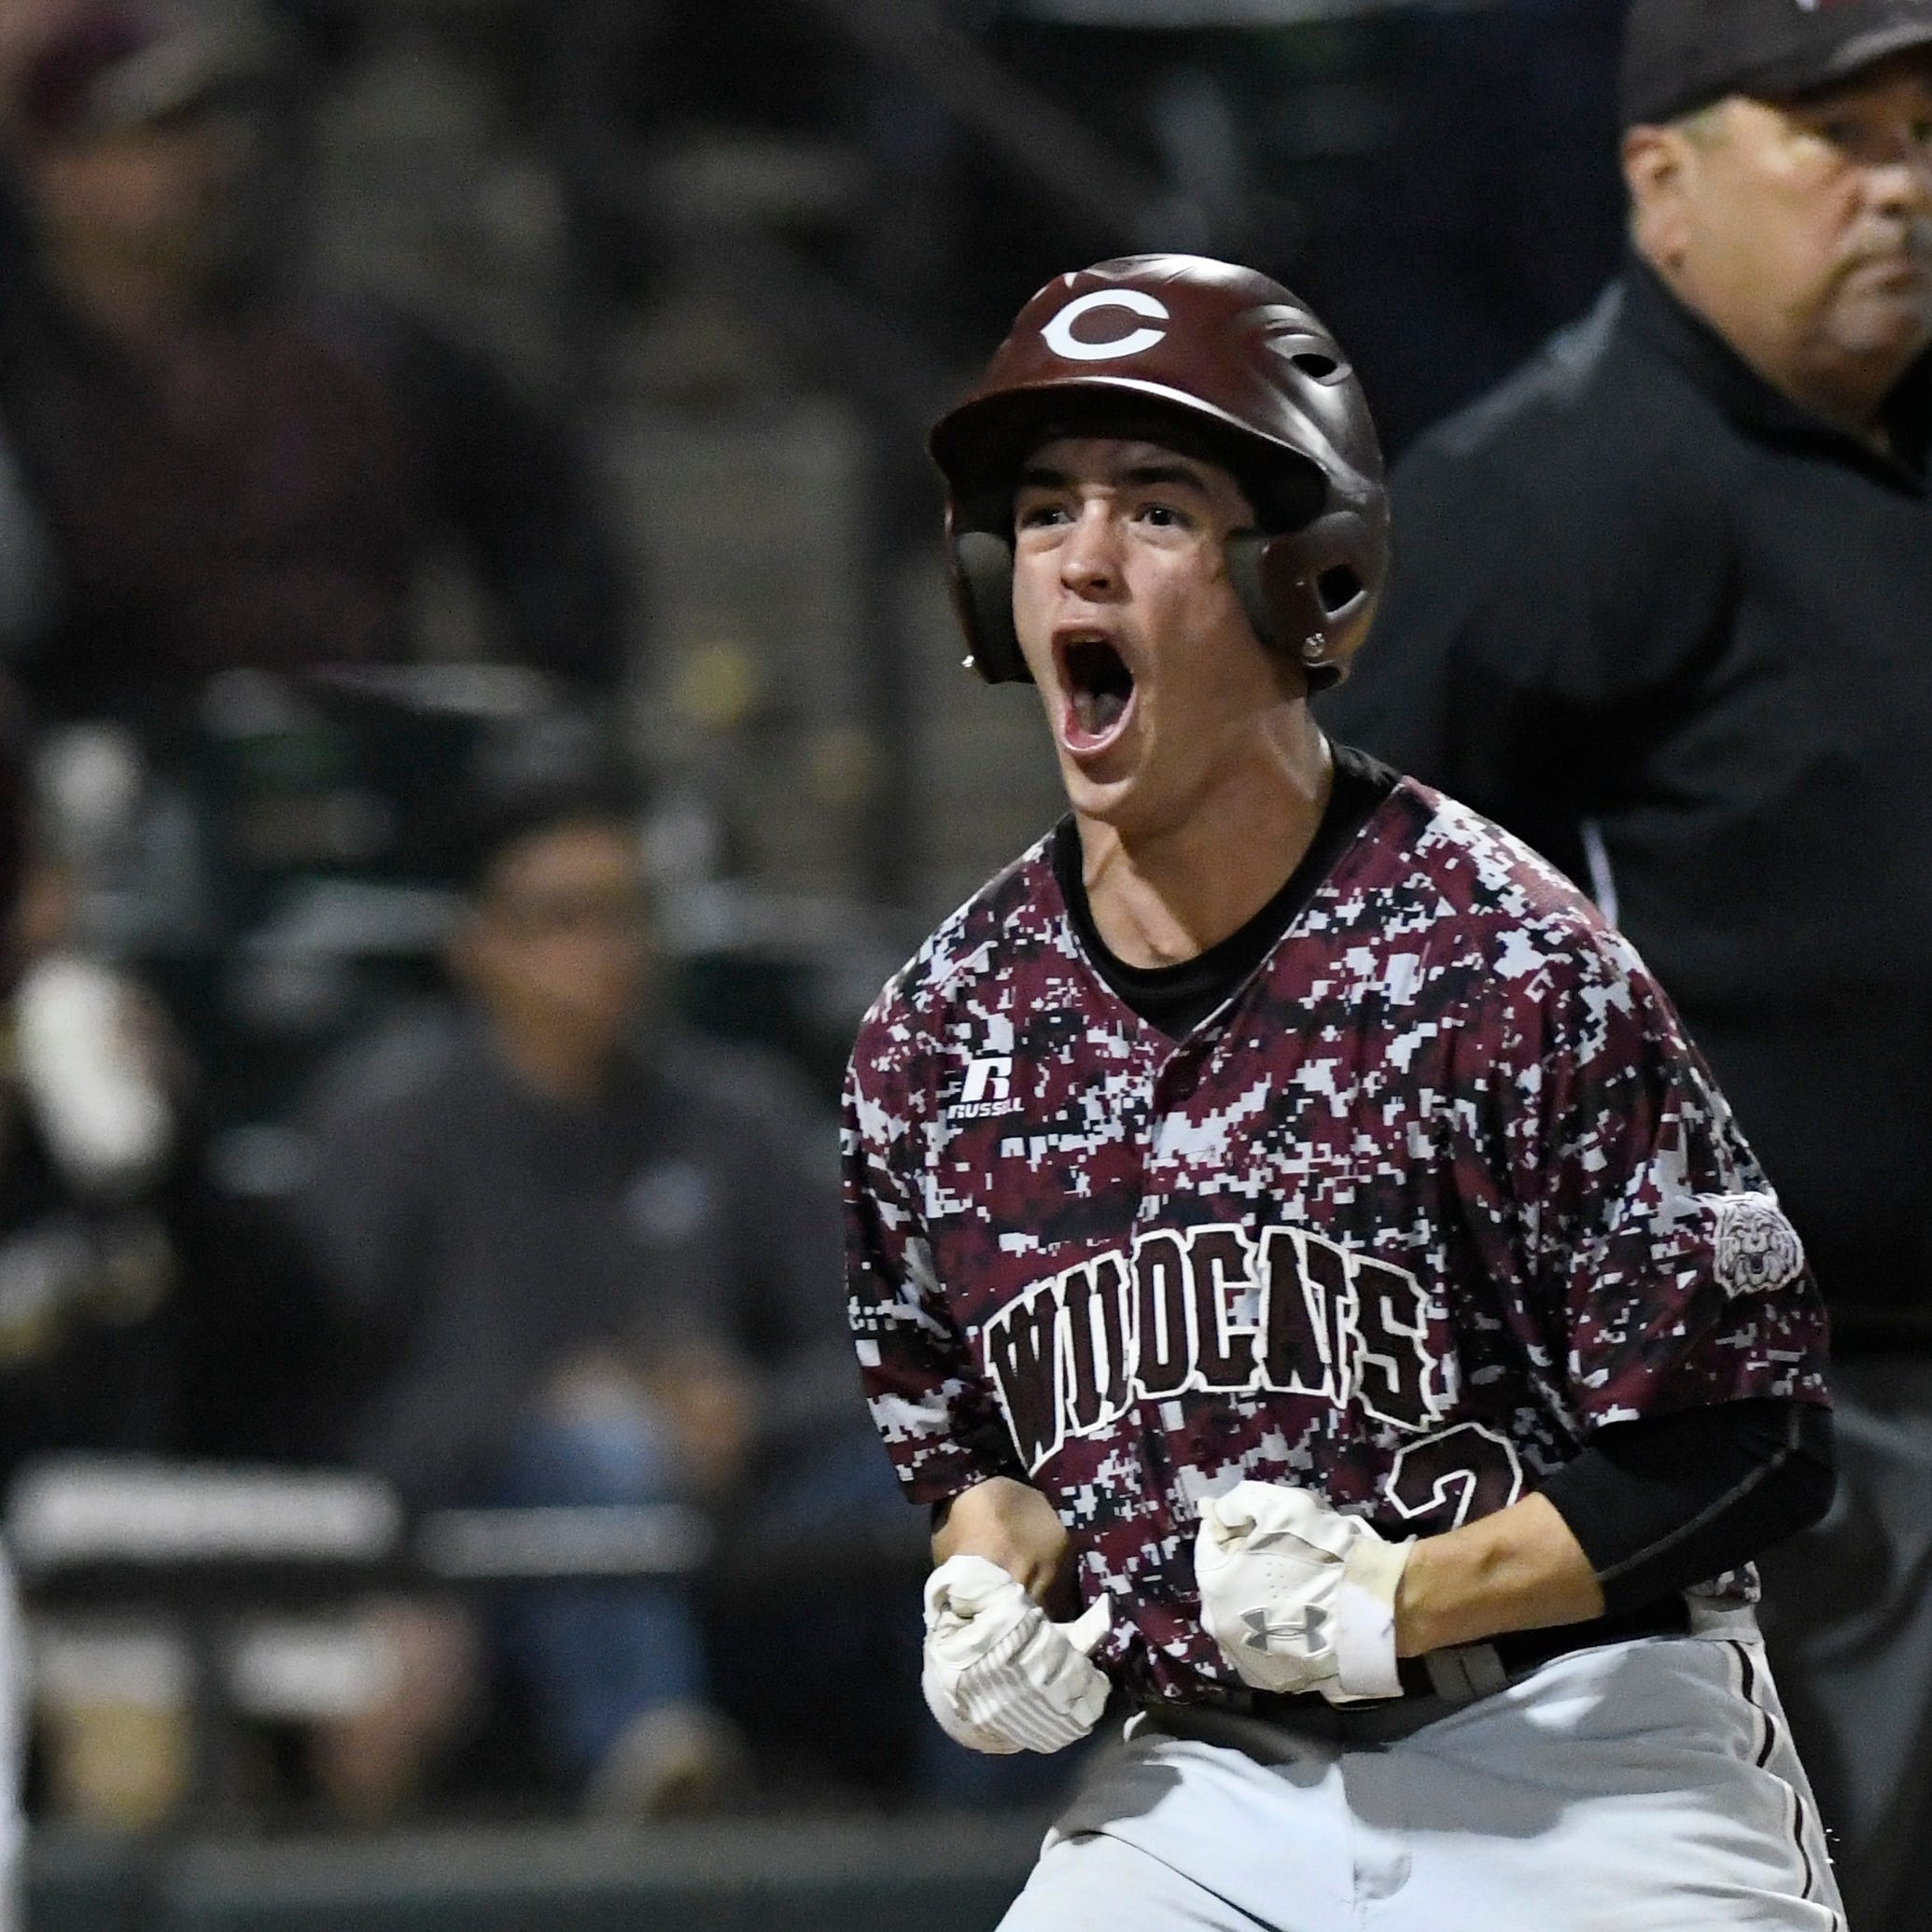 Oliver's 12 Ks, 3 RBI leads Calallen past Tuloso-Midway in high school baseball game